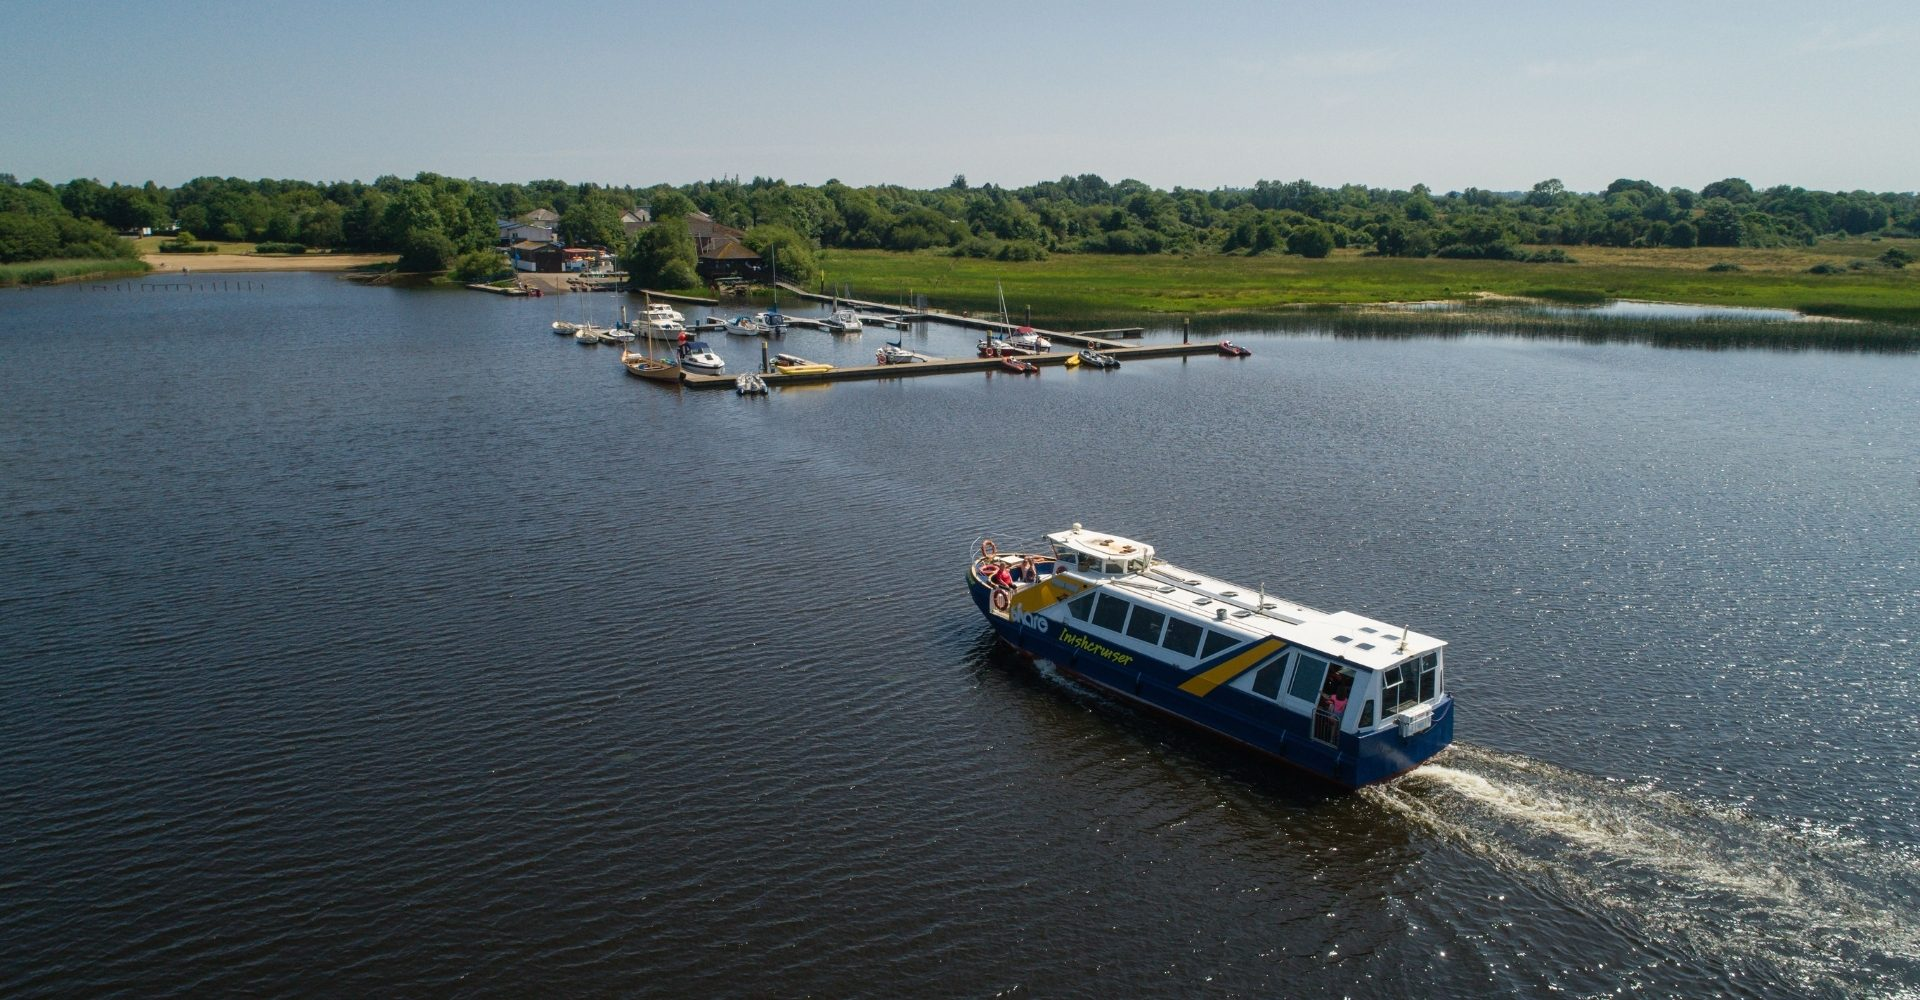 Things to do on a Staycation in Fermanagh - The Iniscruiser